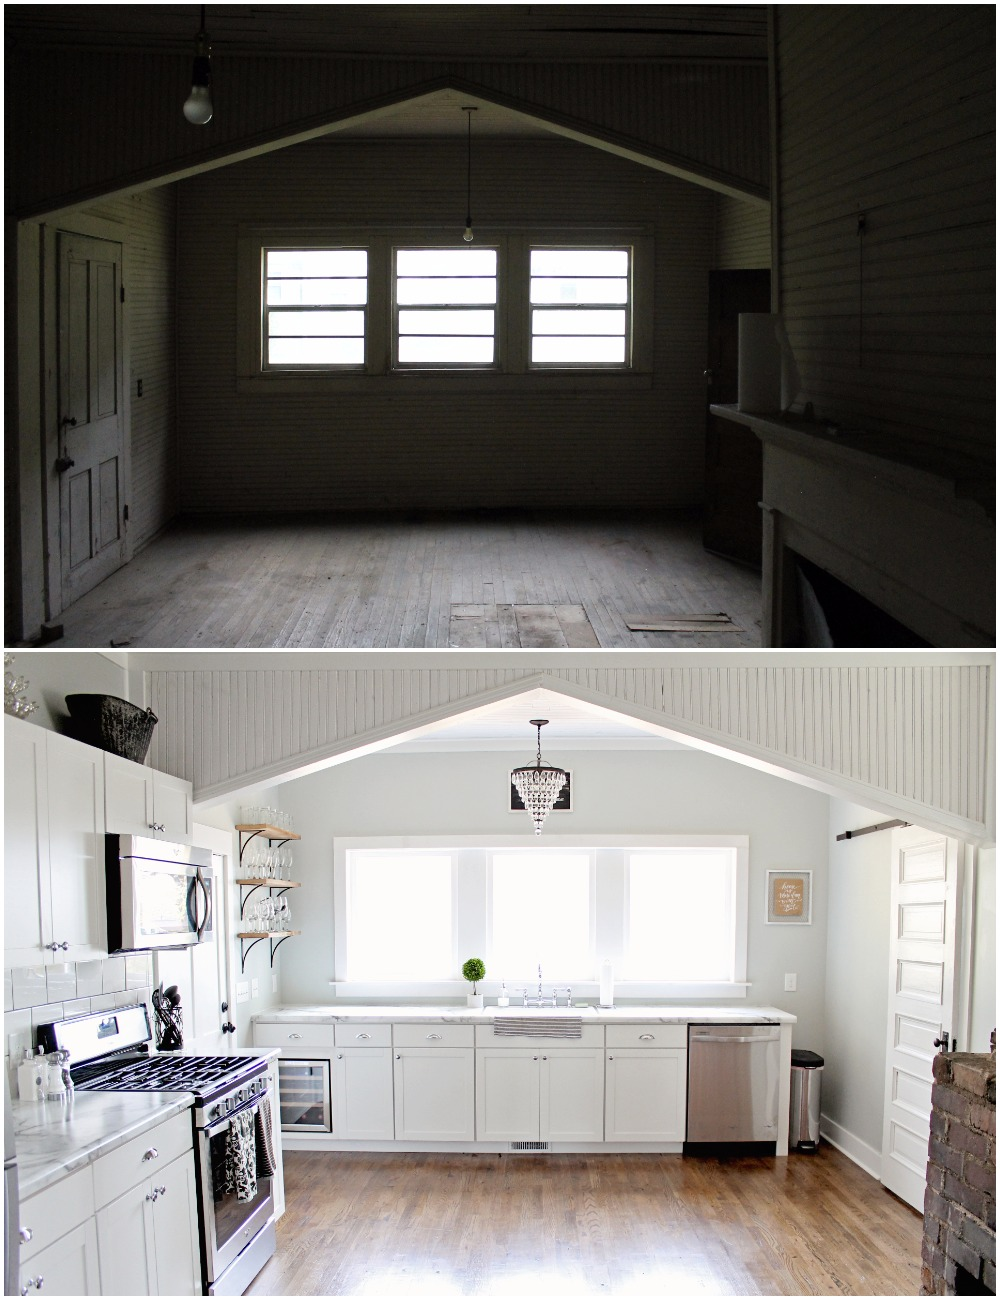 Elizabeth Burns Design  Budget-Friendly Fixer Upper Farmhouse Before and After House Flip - DIY Kitchen with Formica Marble Counter White Shaker Cabinets Barn Door - Sherwin Williams Silver Strand (1).jpg